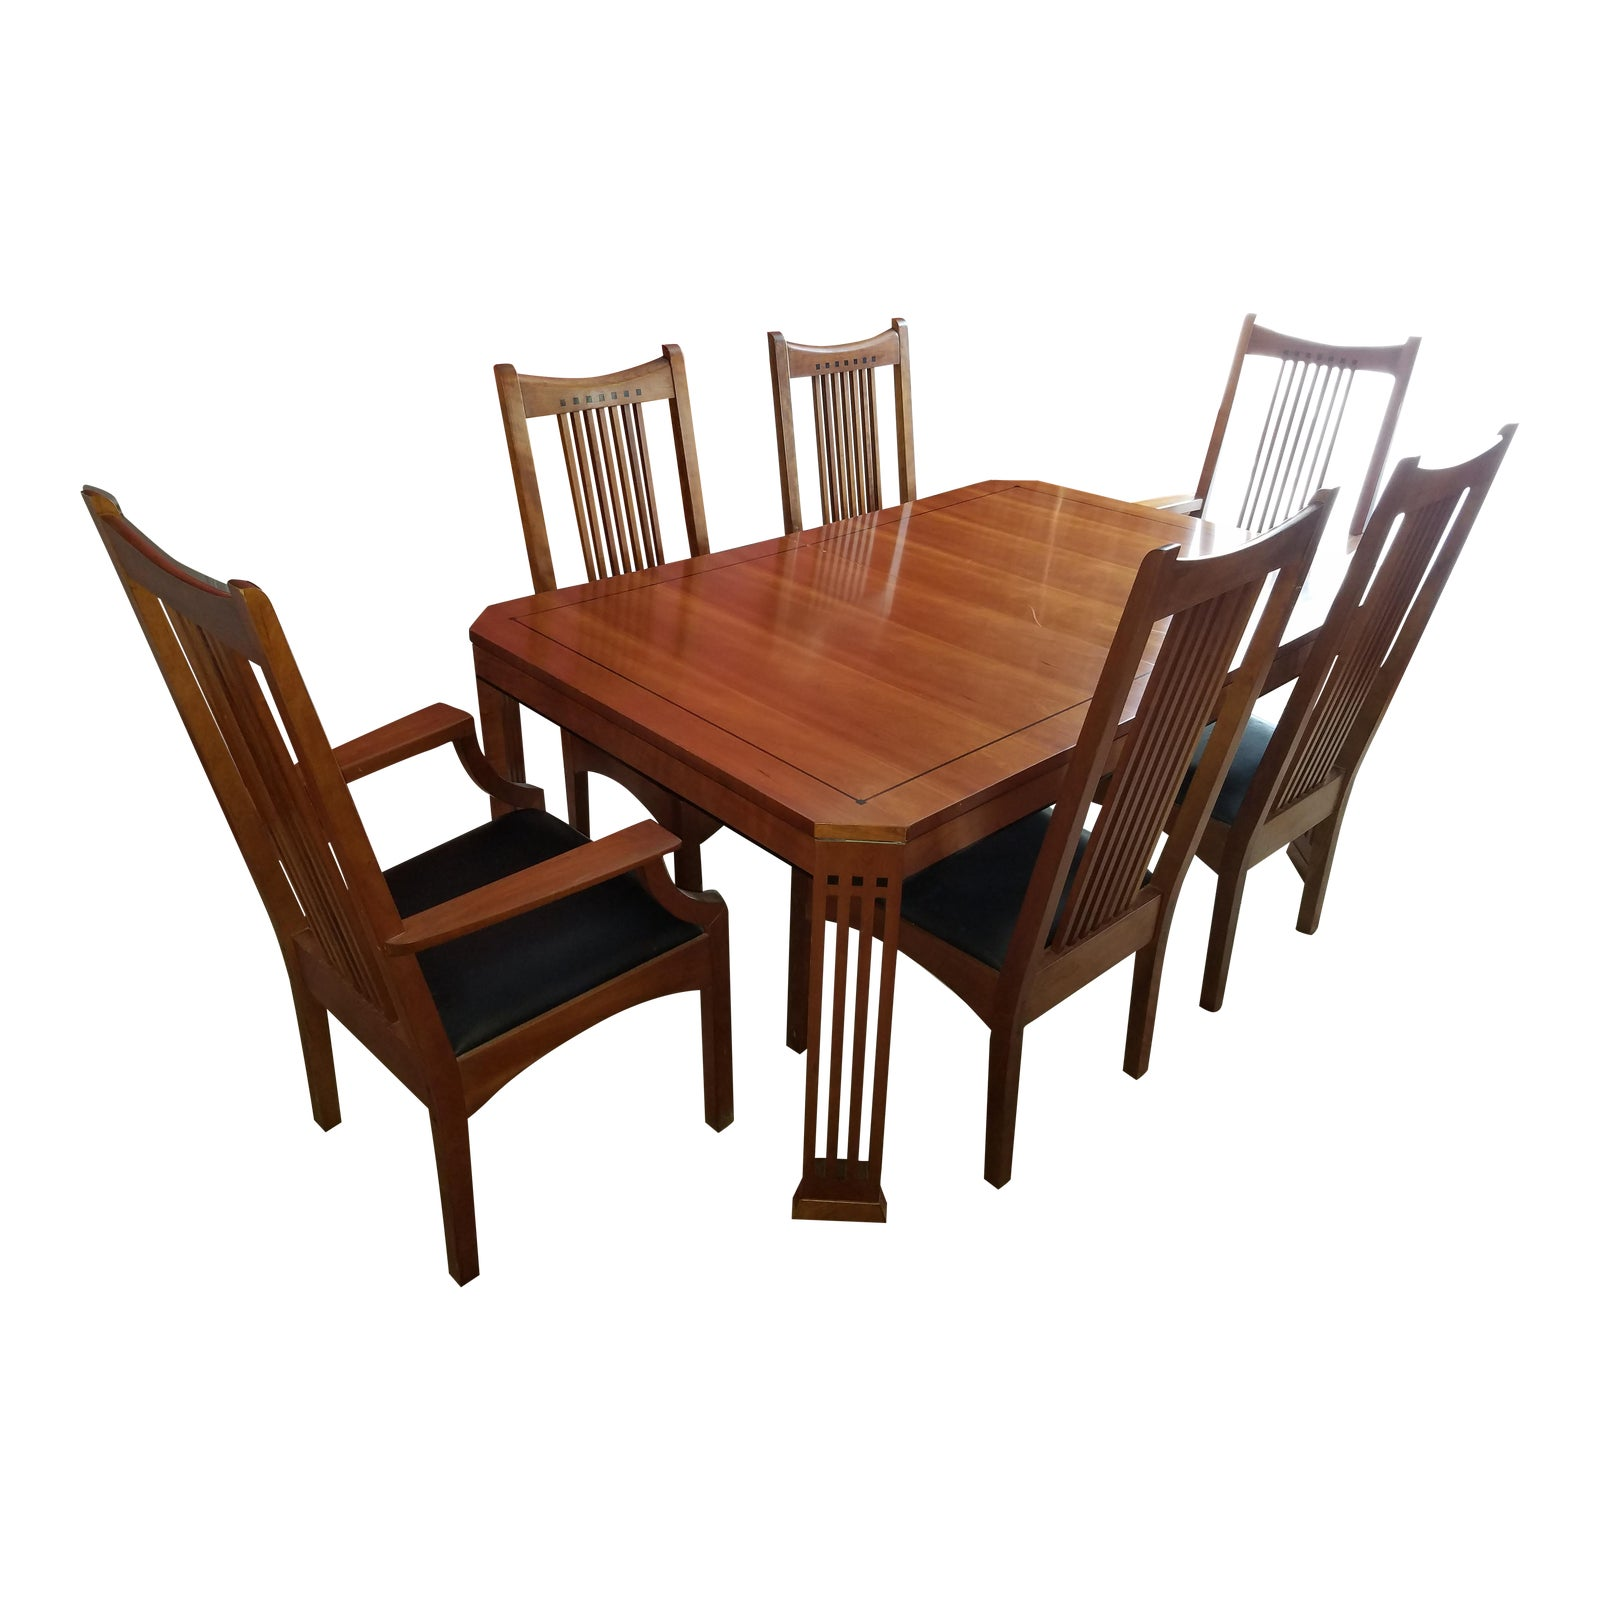 Stickley Dining Room Furniture For Sale: Stickley 21st Century Collection Dining Table Set With 6